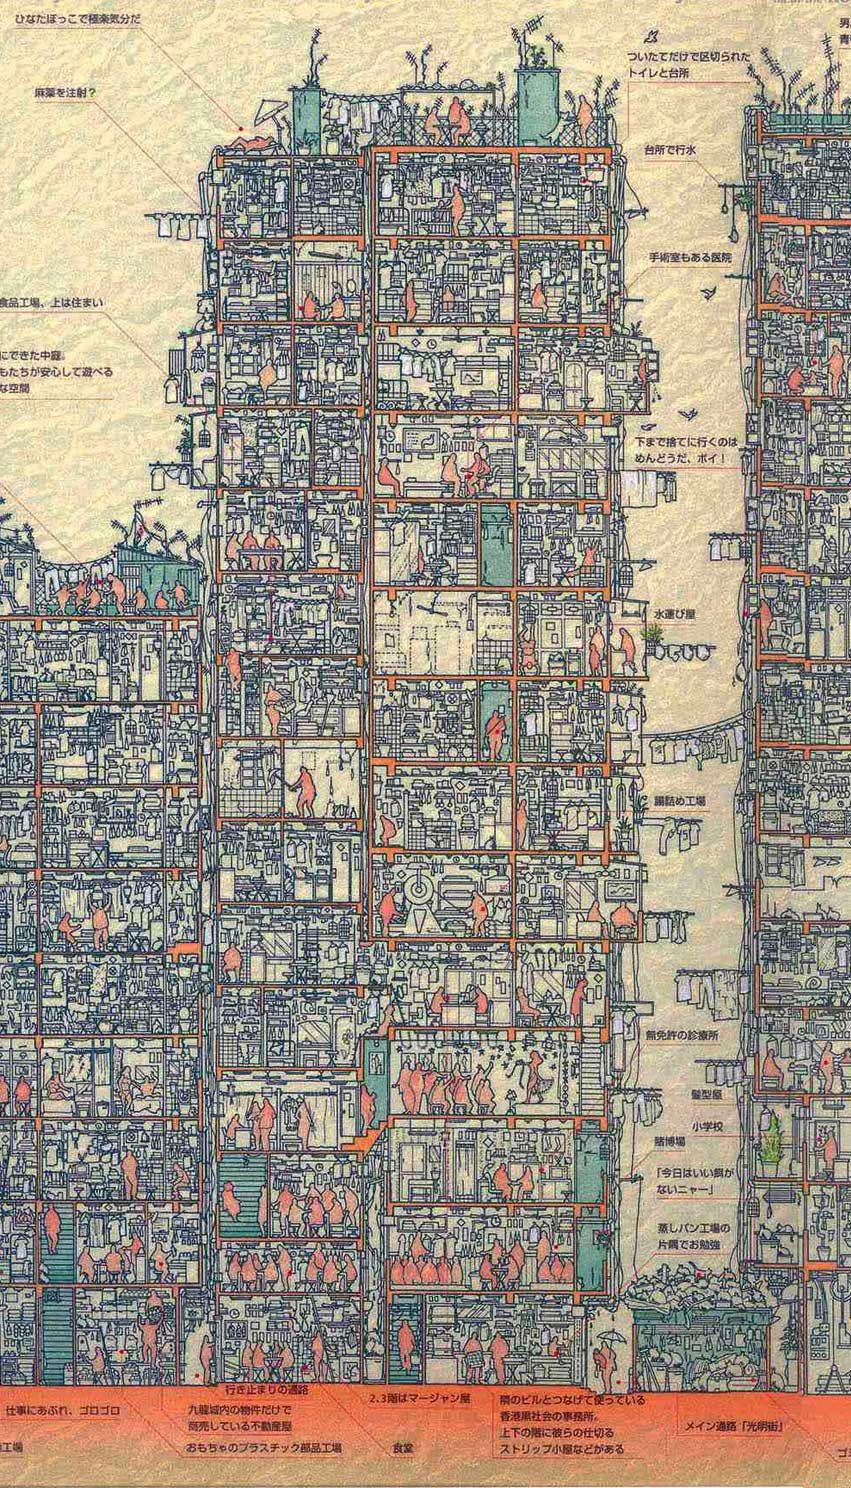 Kowloon Walled City cross section architecture without